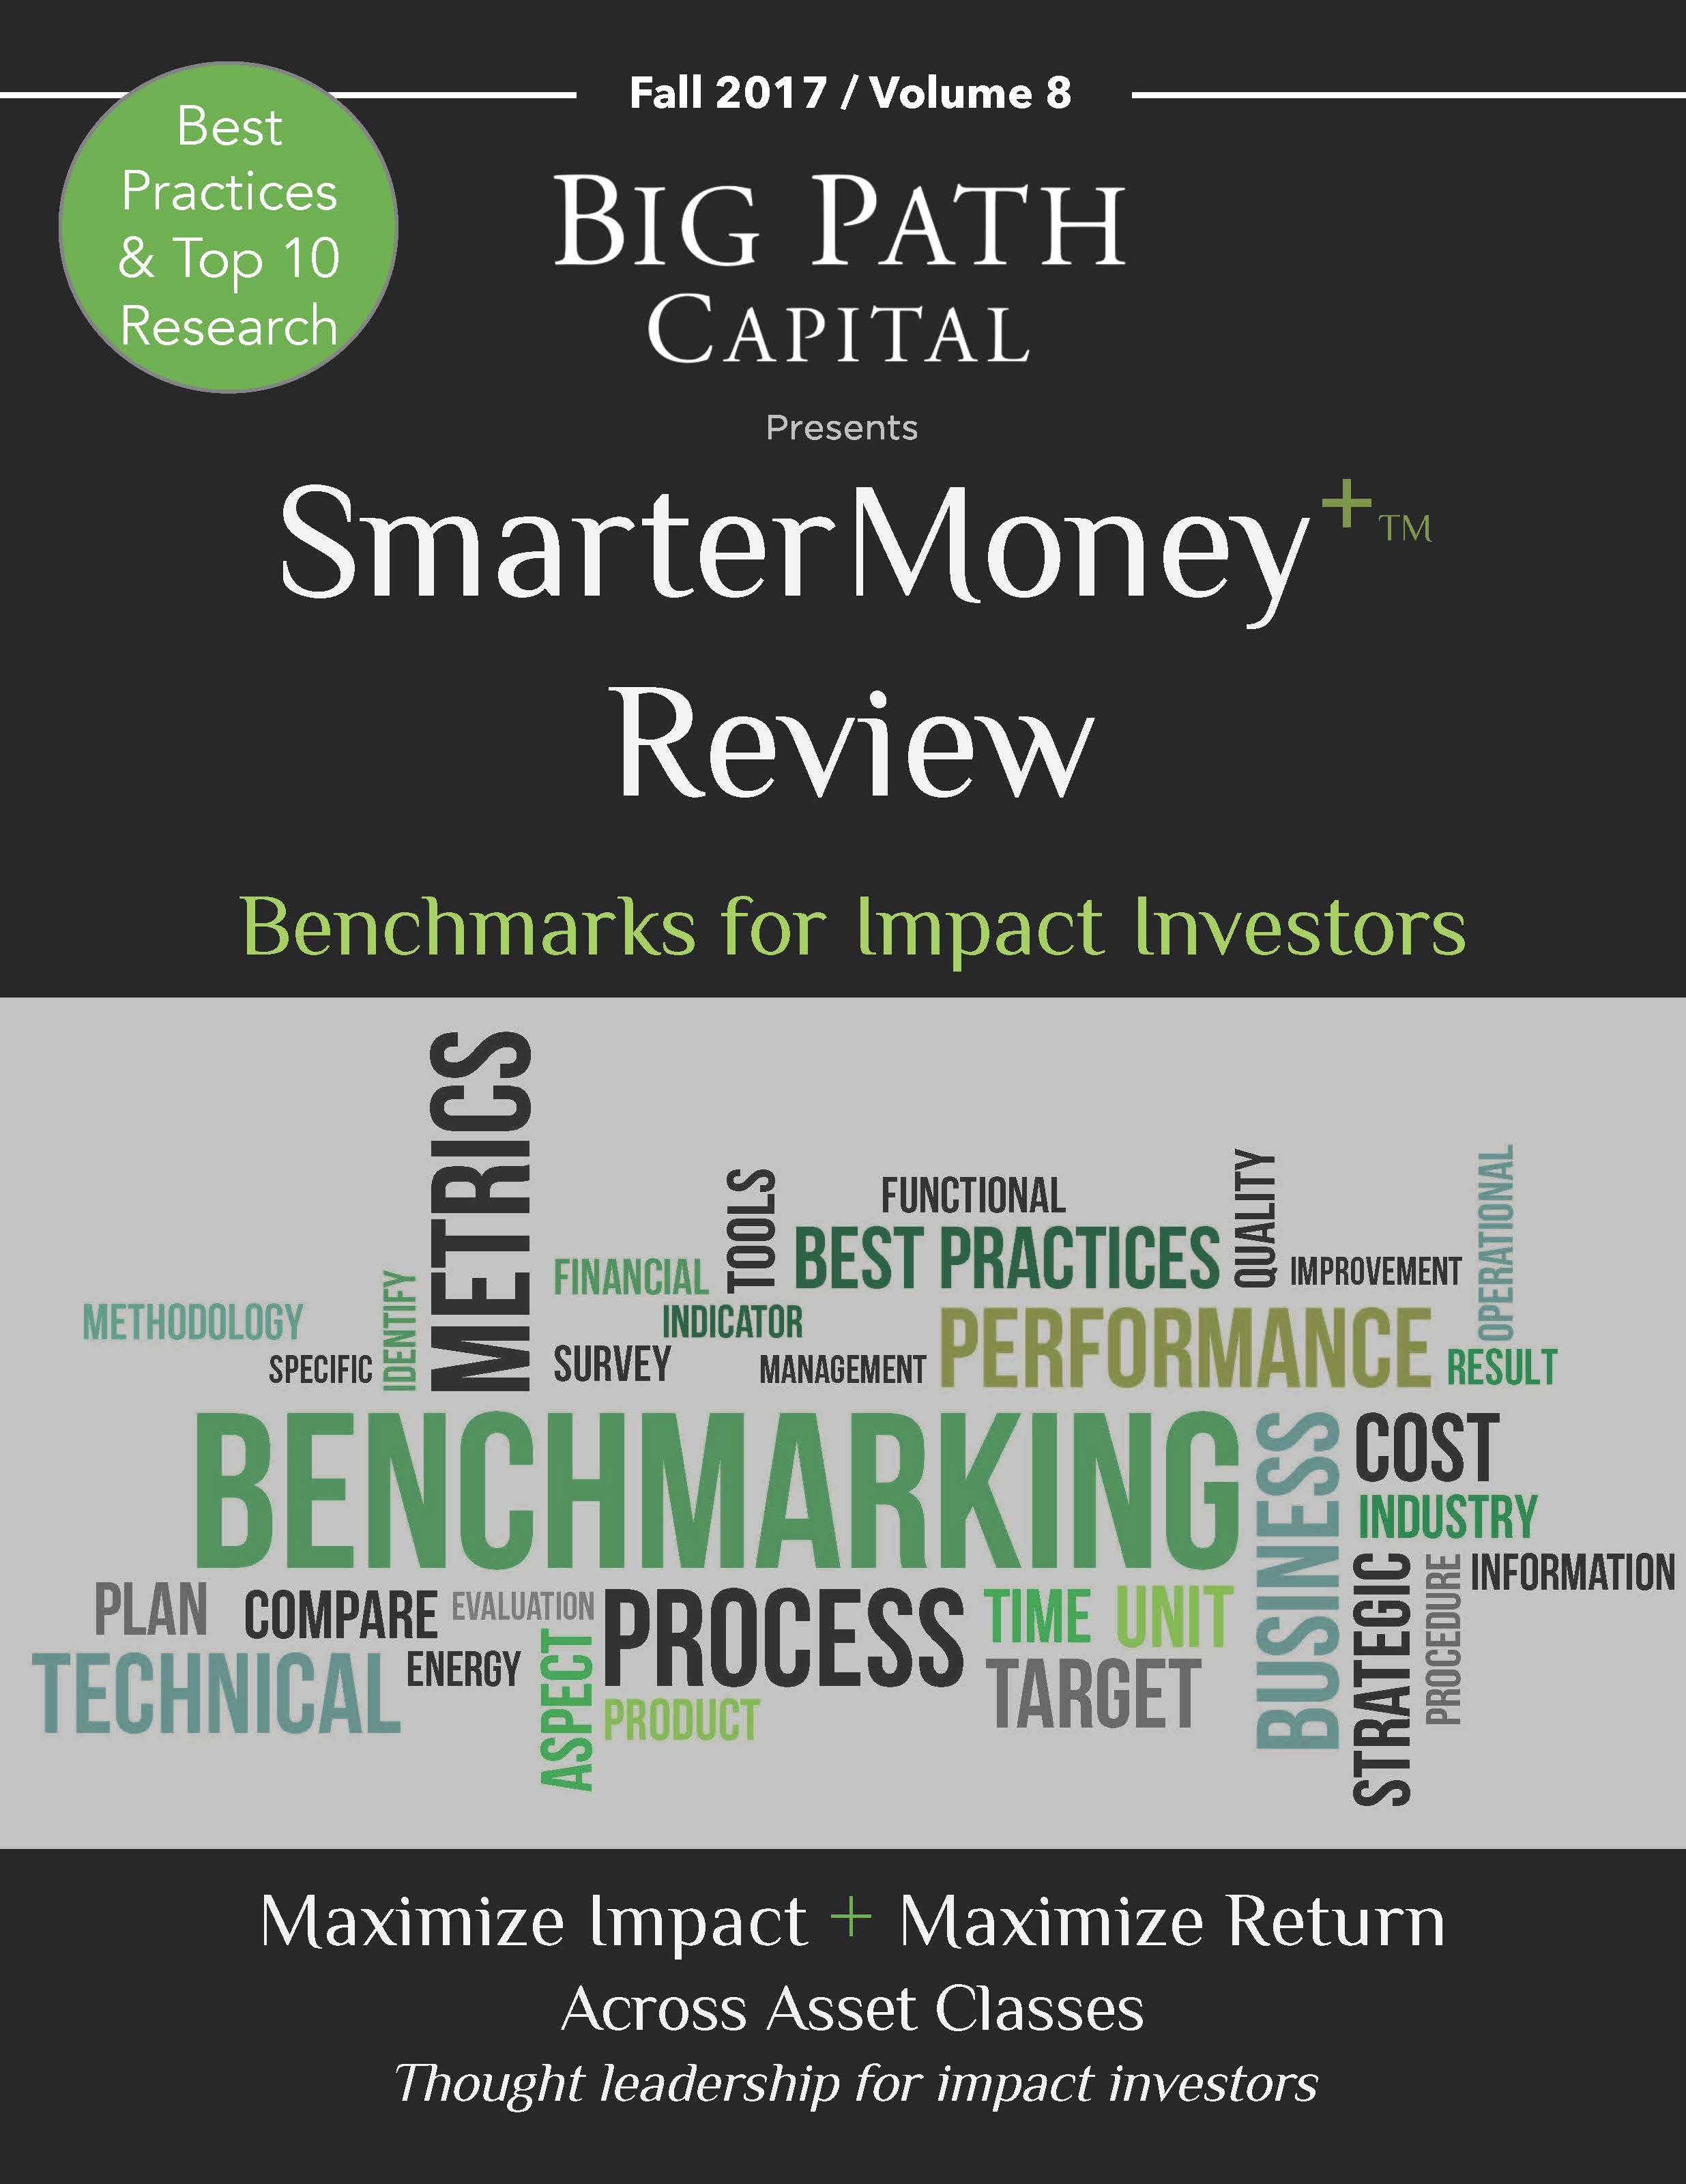 Big Path Capital Education - Smarter Money Review - Benchmarks for Impact Investors